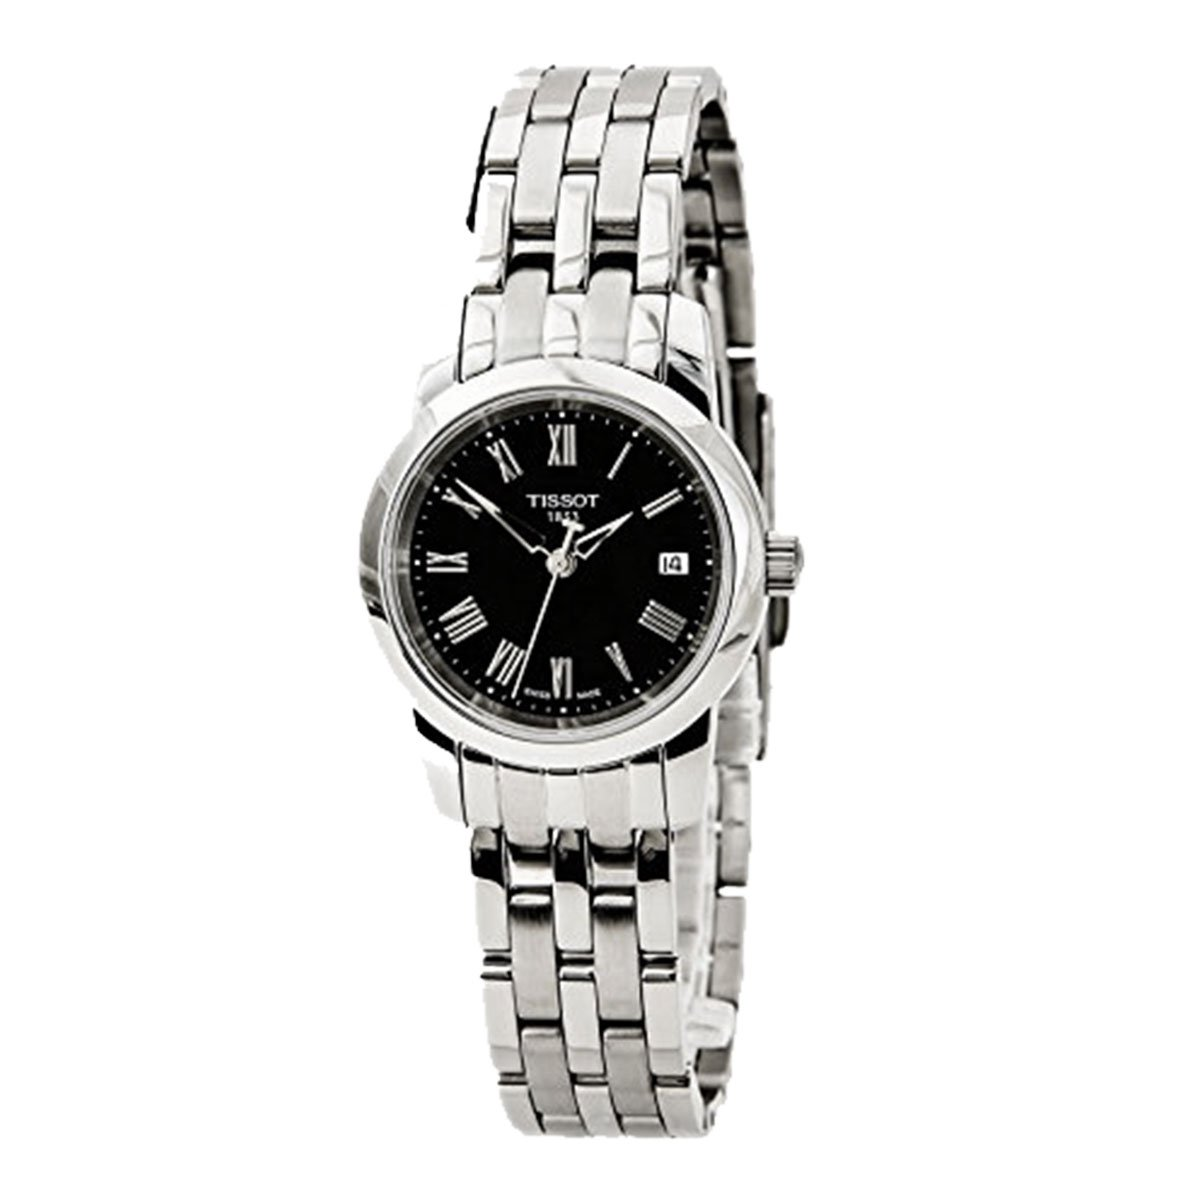 Tissot T0332101105300 Womens Stainless Steel Case and Bracelet Black Dial Date Display Roman Numerals